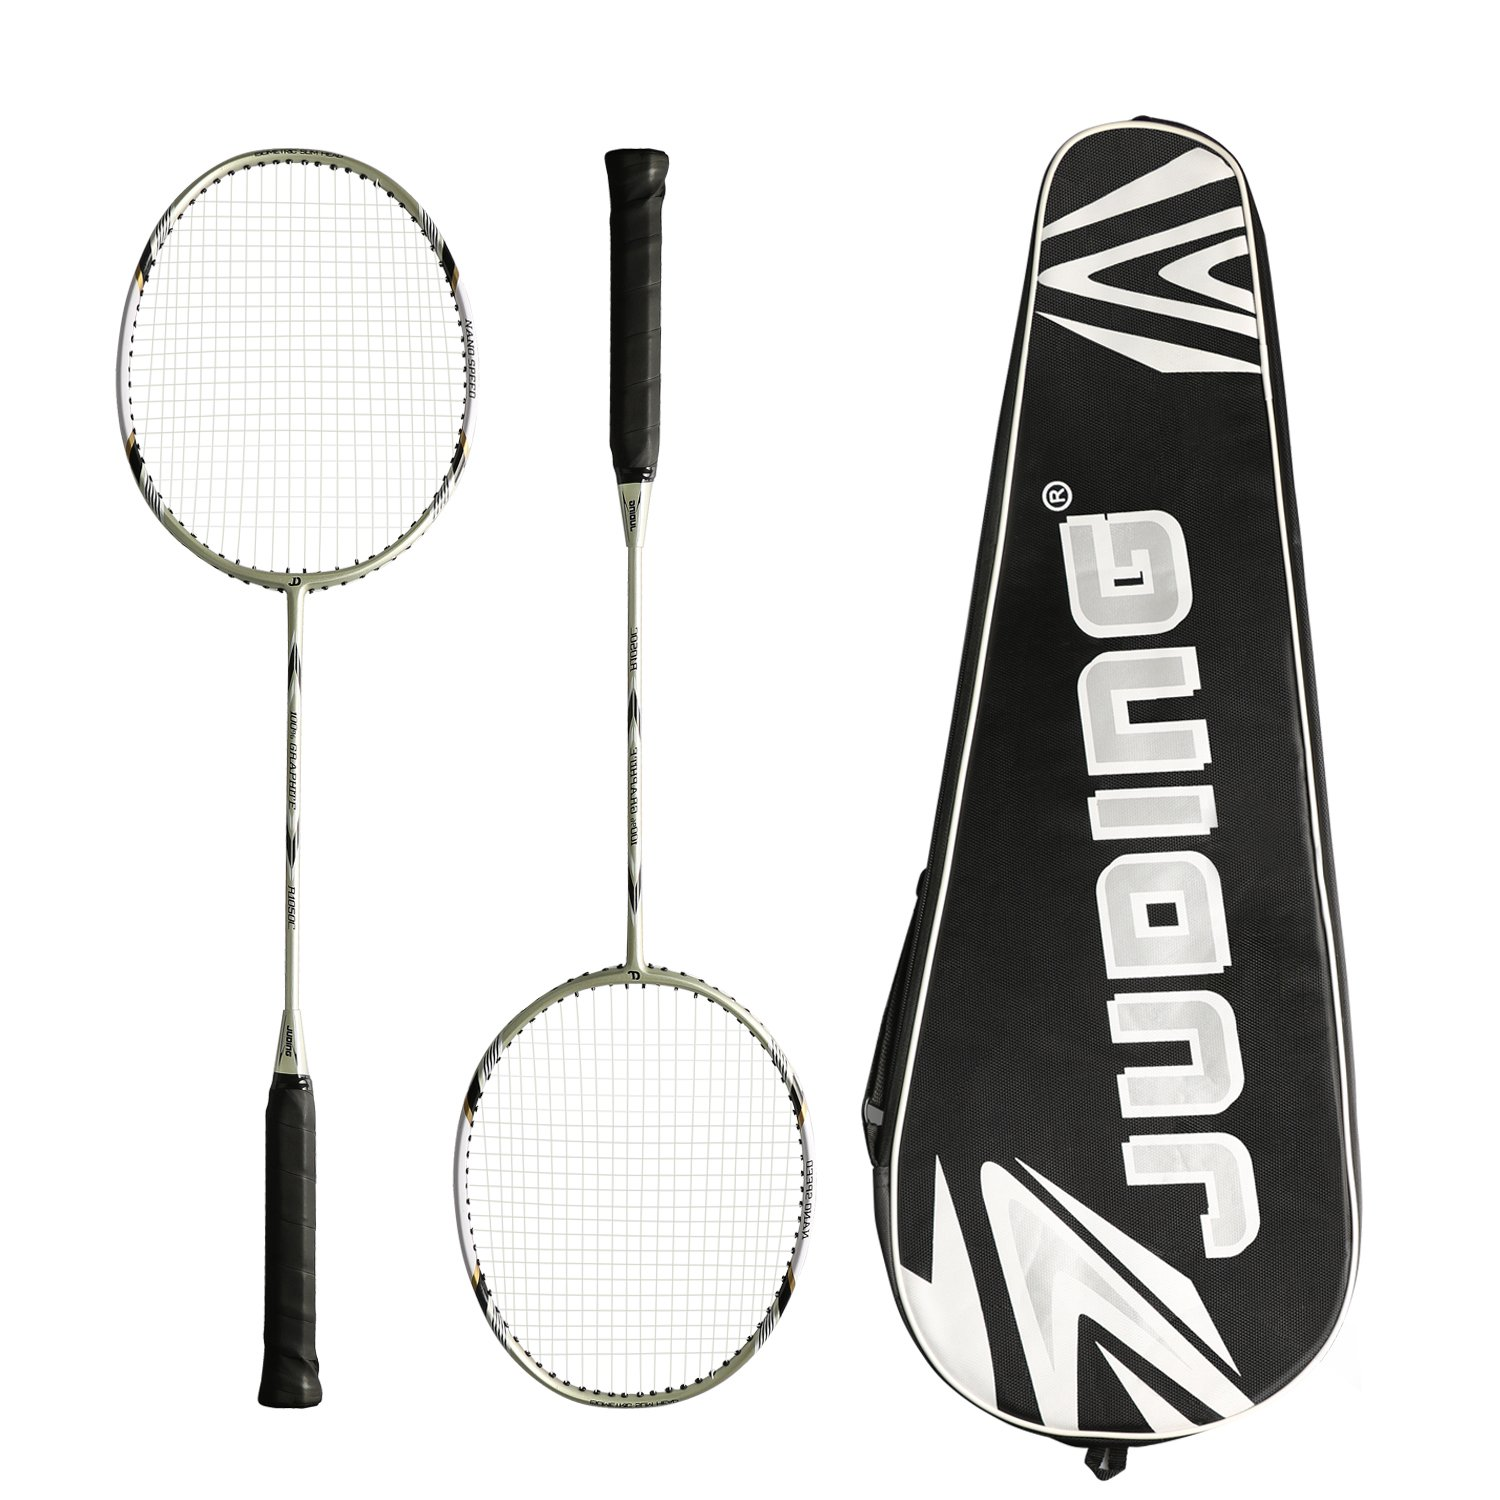 Ancees Badminton Rackets Set, Graphite Badminton Racquet 87+/-2 Gram Set - Including 1 Badminton Bag / 2 Rackets Ideal for Trainers, Amateurs and Beginners (Very Light)